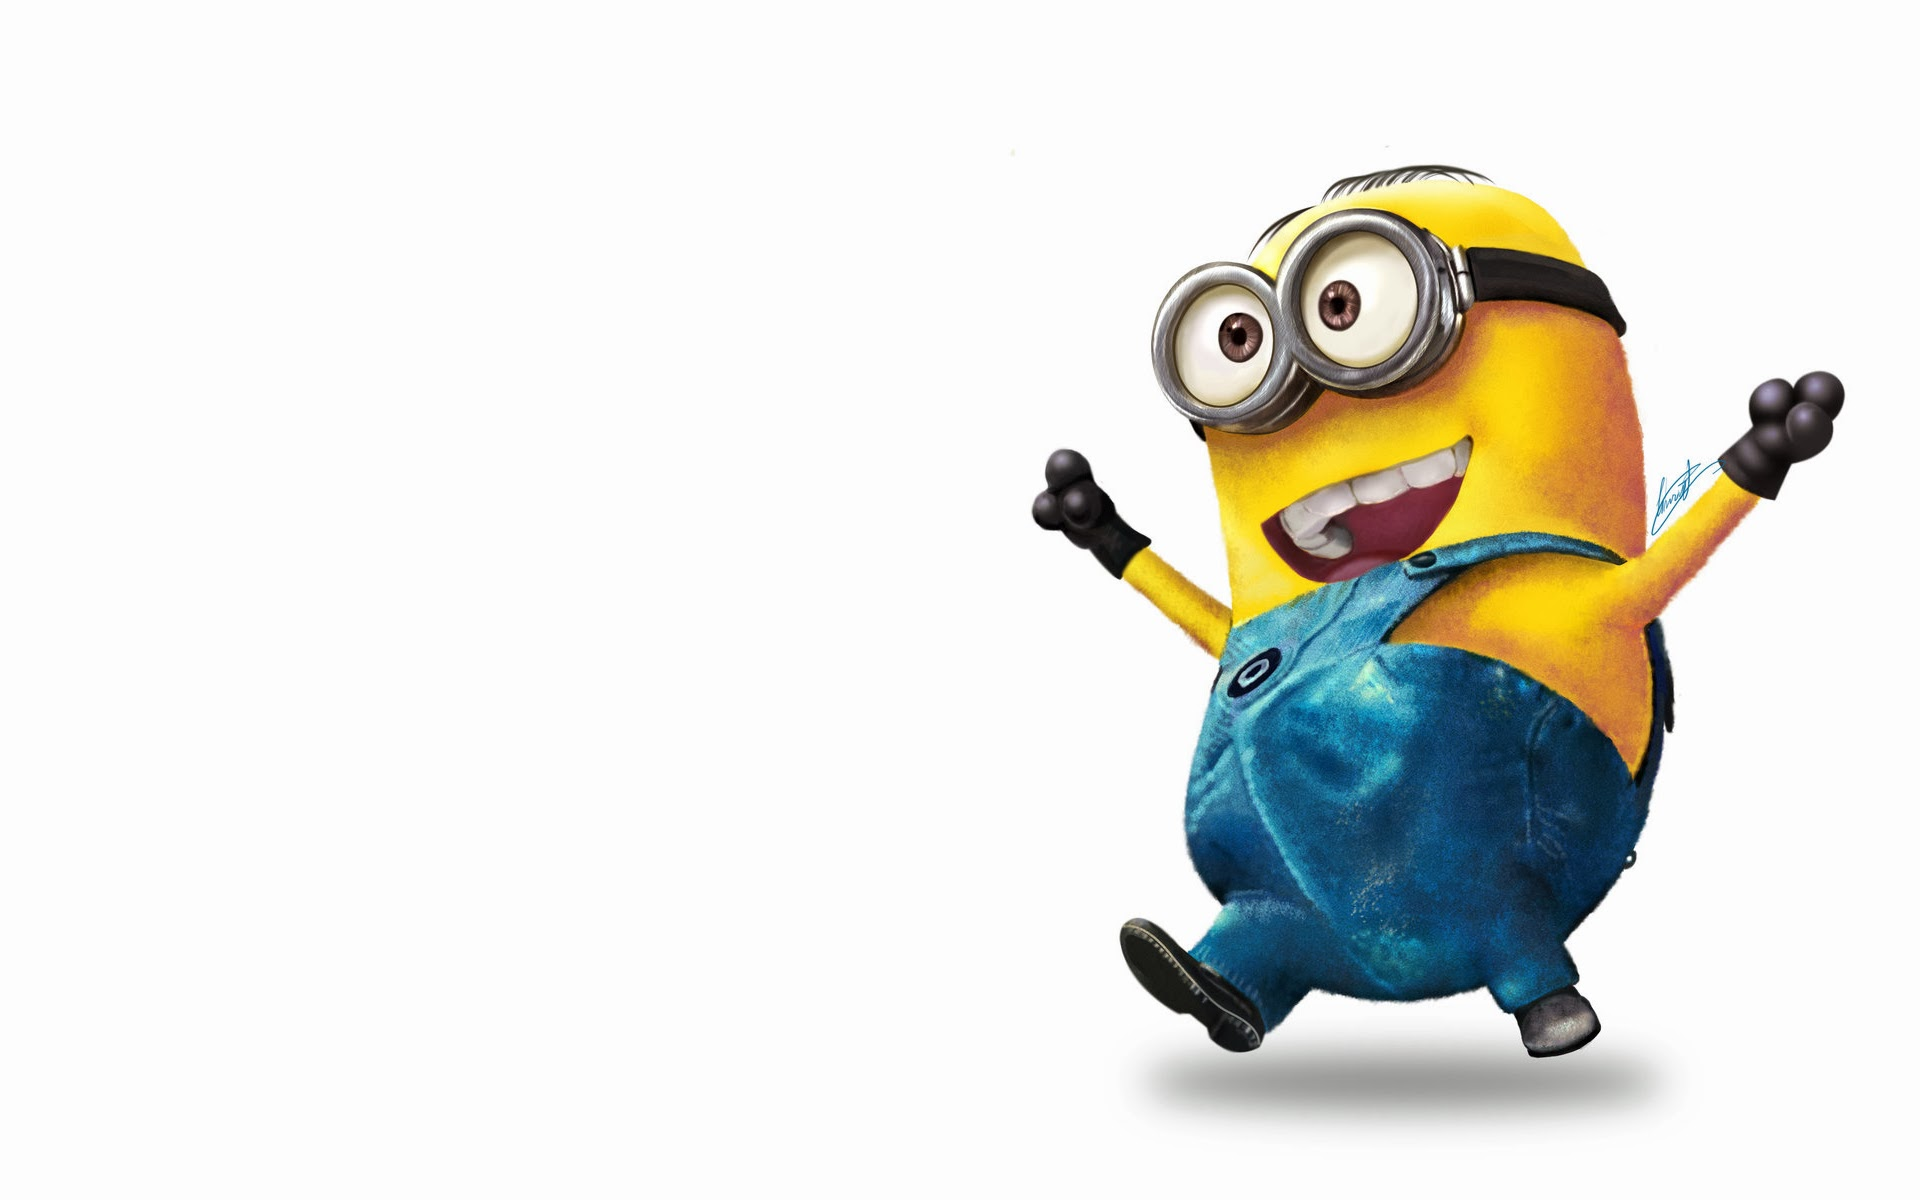 Minion Wallpaper New Wonderful High Quality 233 Backgrounds